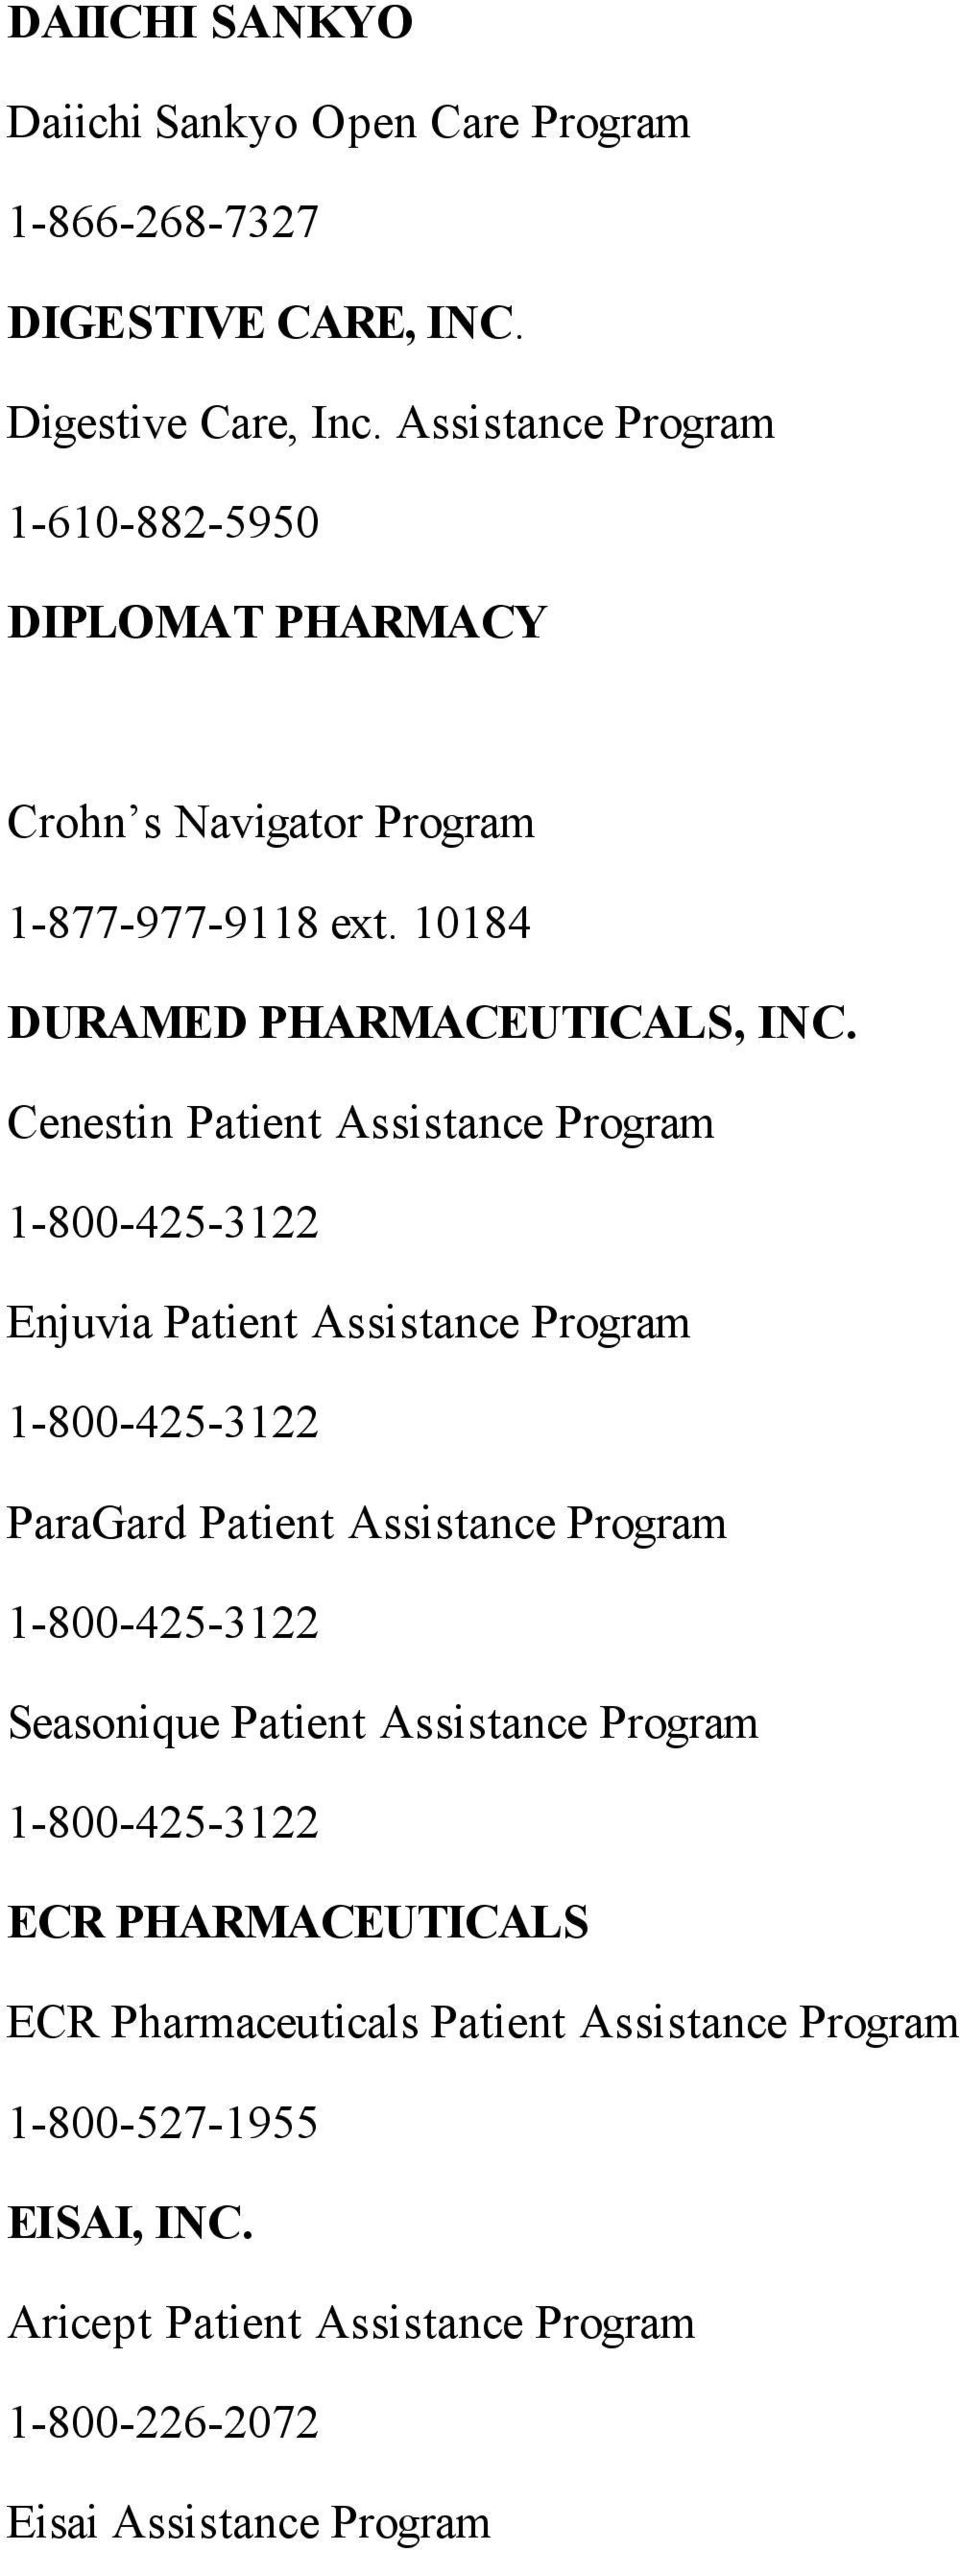 Cenestin Patient Assistance Program 1-800-425-3122 Enjuvia Patient Assistance Program 1-800-425-3122 ParaGard Patient Assistance Program 1-800-425-3122